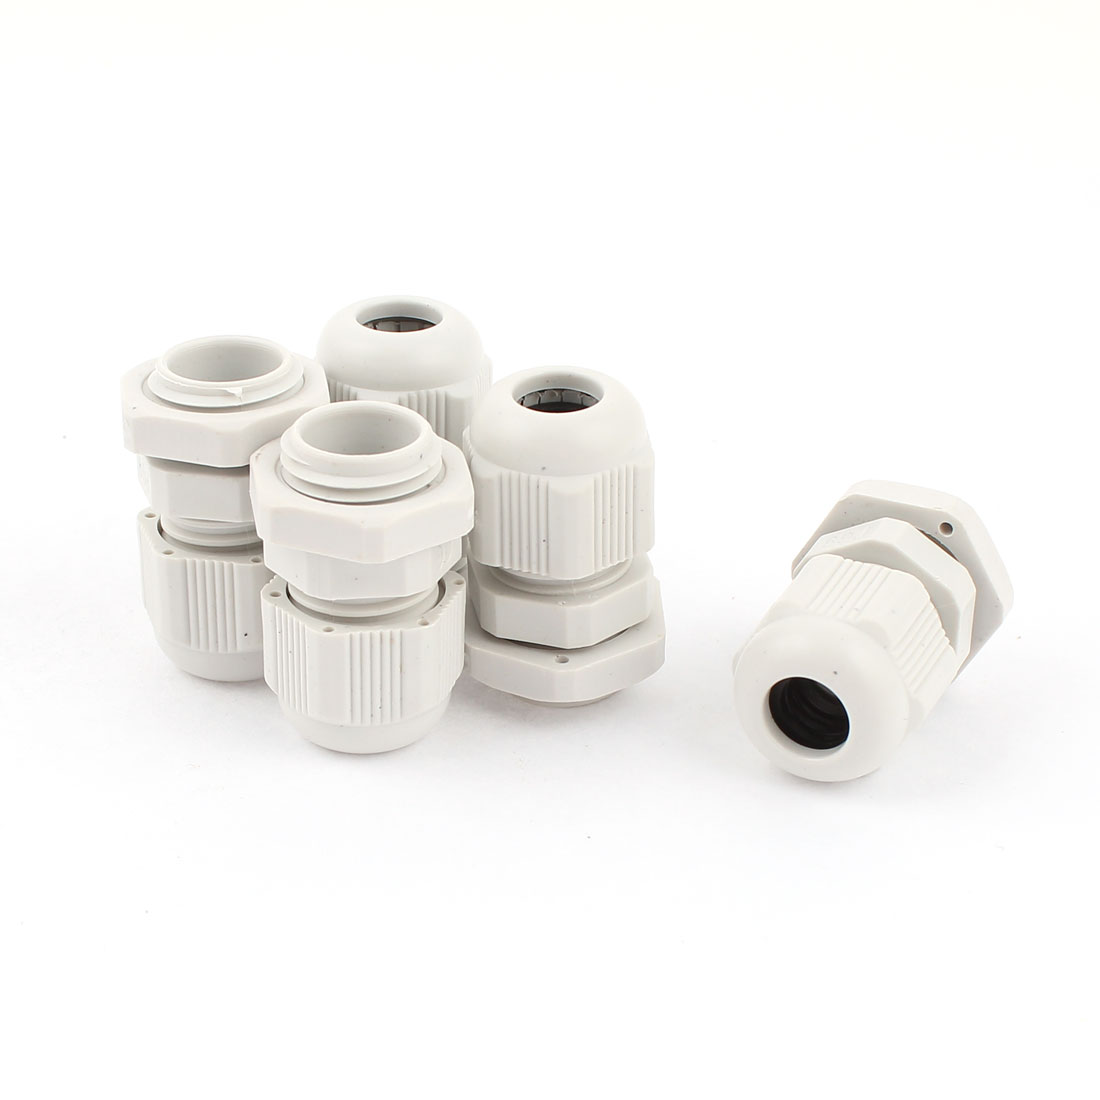 5 Pcs 4mm-8mm Diameter Cable Glands Plastic Fasteners Joint Connectors PG9 White